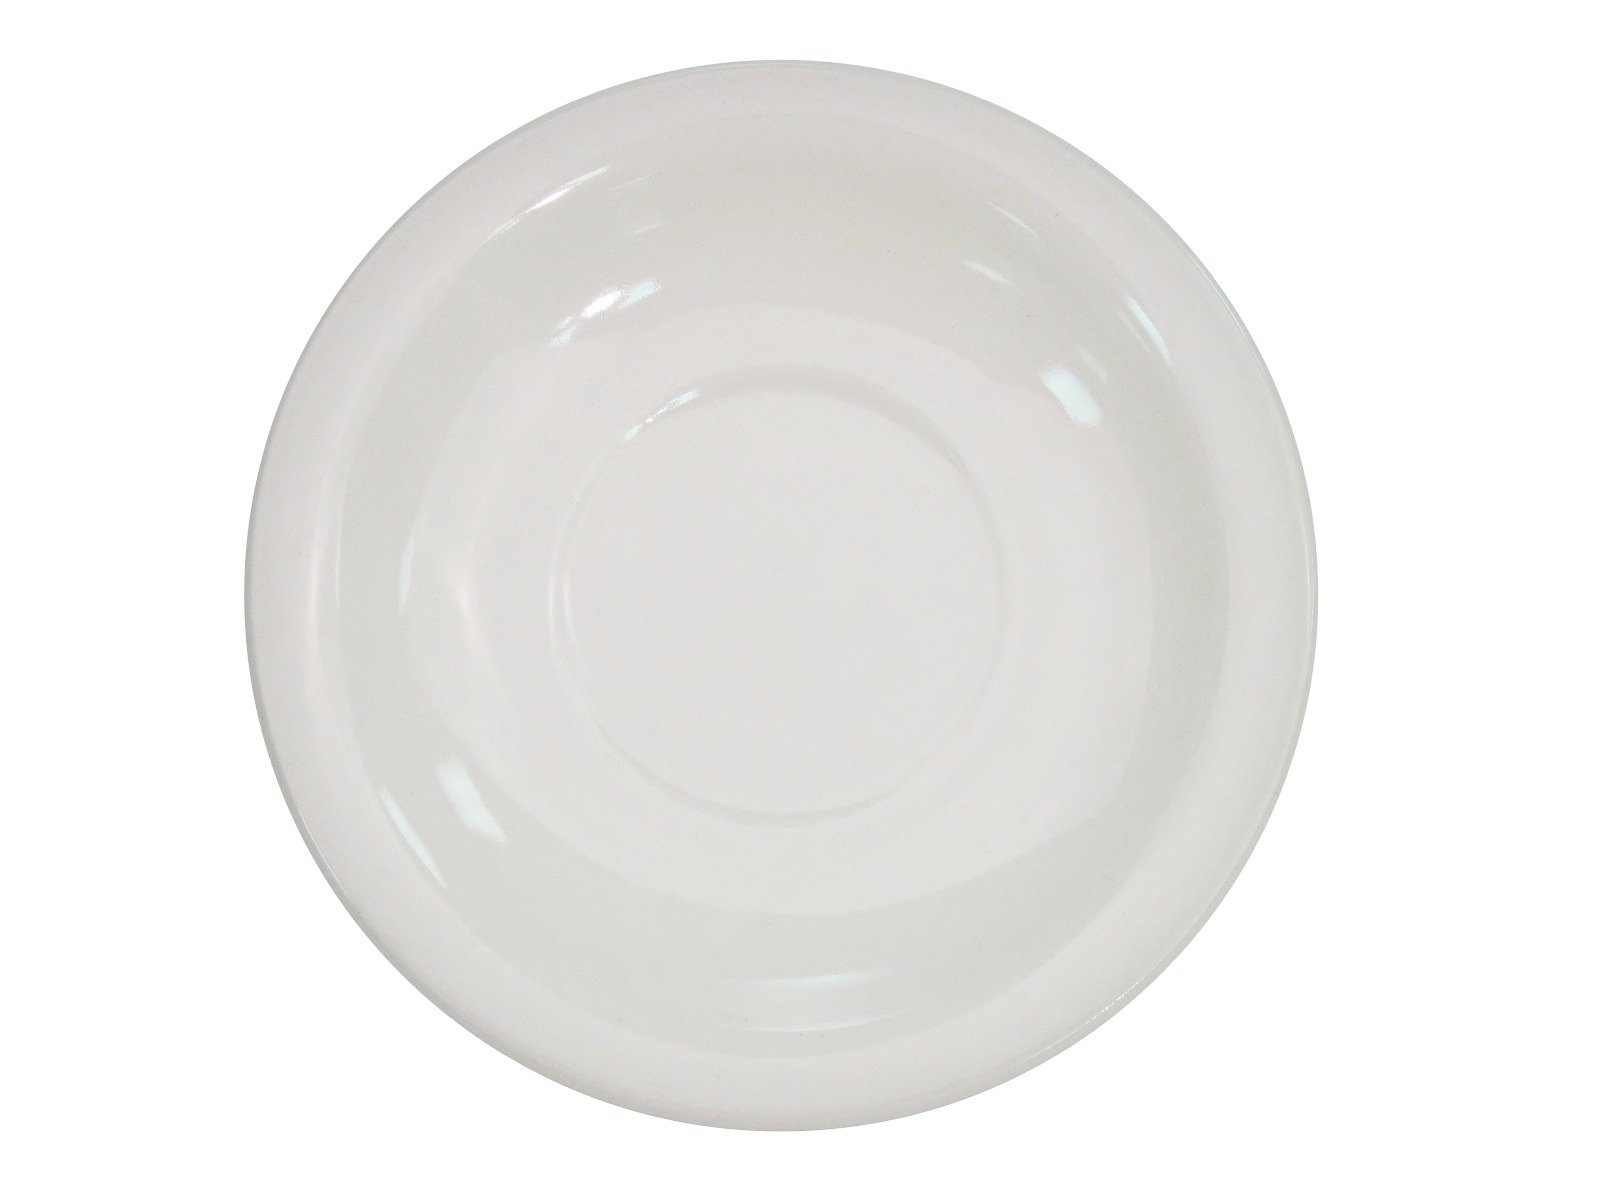 CAC China NRC-2 Narrow Rim 5-1/2-Inch American White Stoneware Saucer, Box of 36